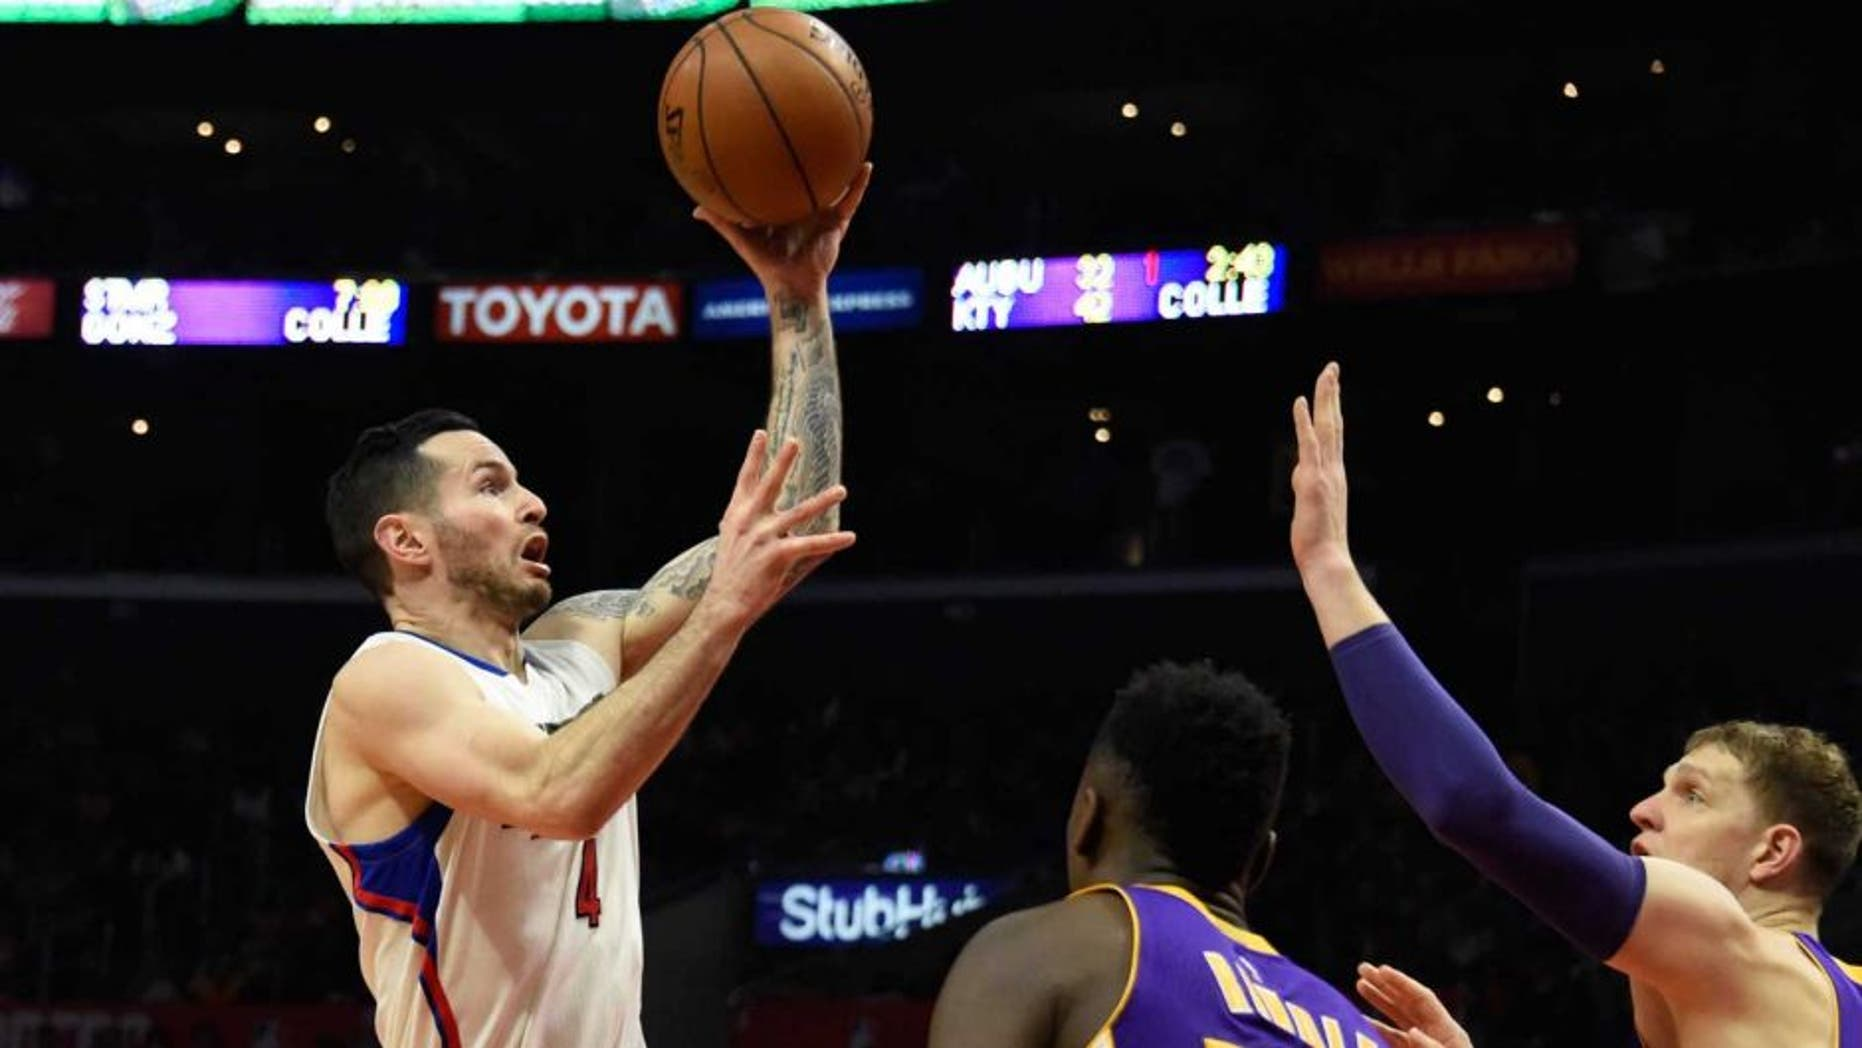 Jan 14, 2017; Los Angeles, CA, USA; LA Clippers guard J.J. Redick (4) shoots against Los Angeles Lakers forward Julius Randle (30) during the NBA game at the Staples Center. Mandatory Credit: Richard Mackson-USA TODAY Sports